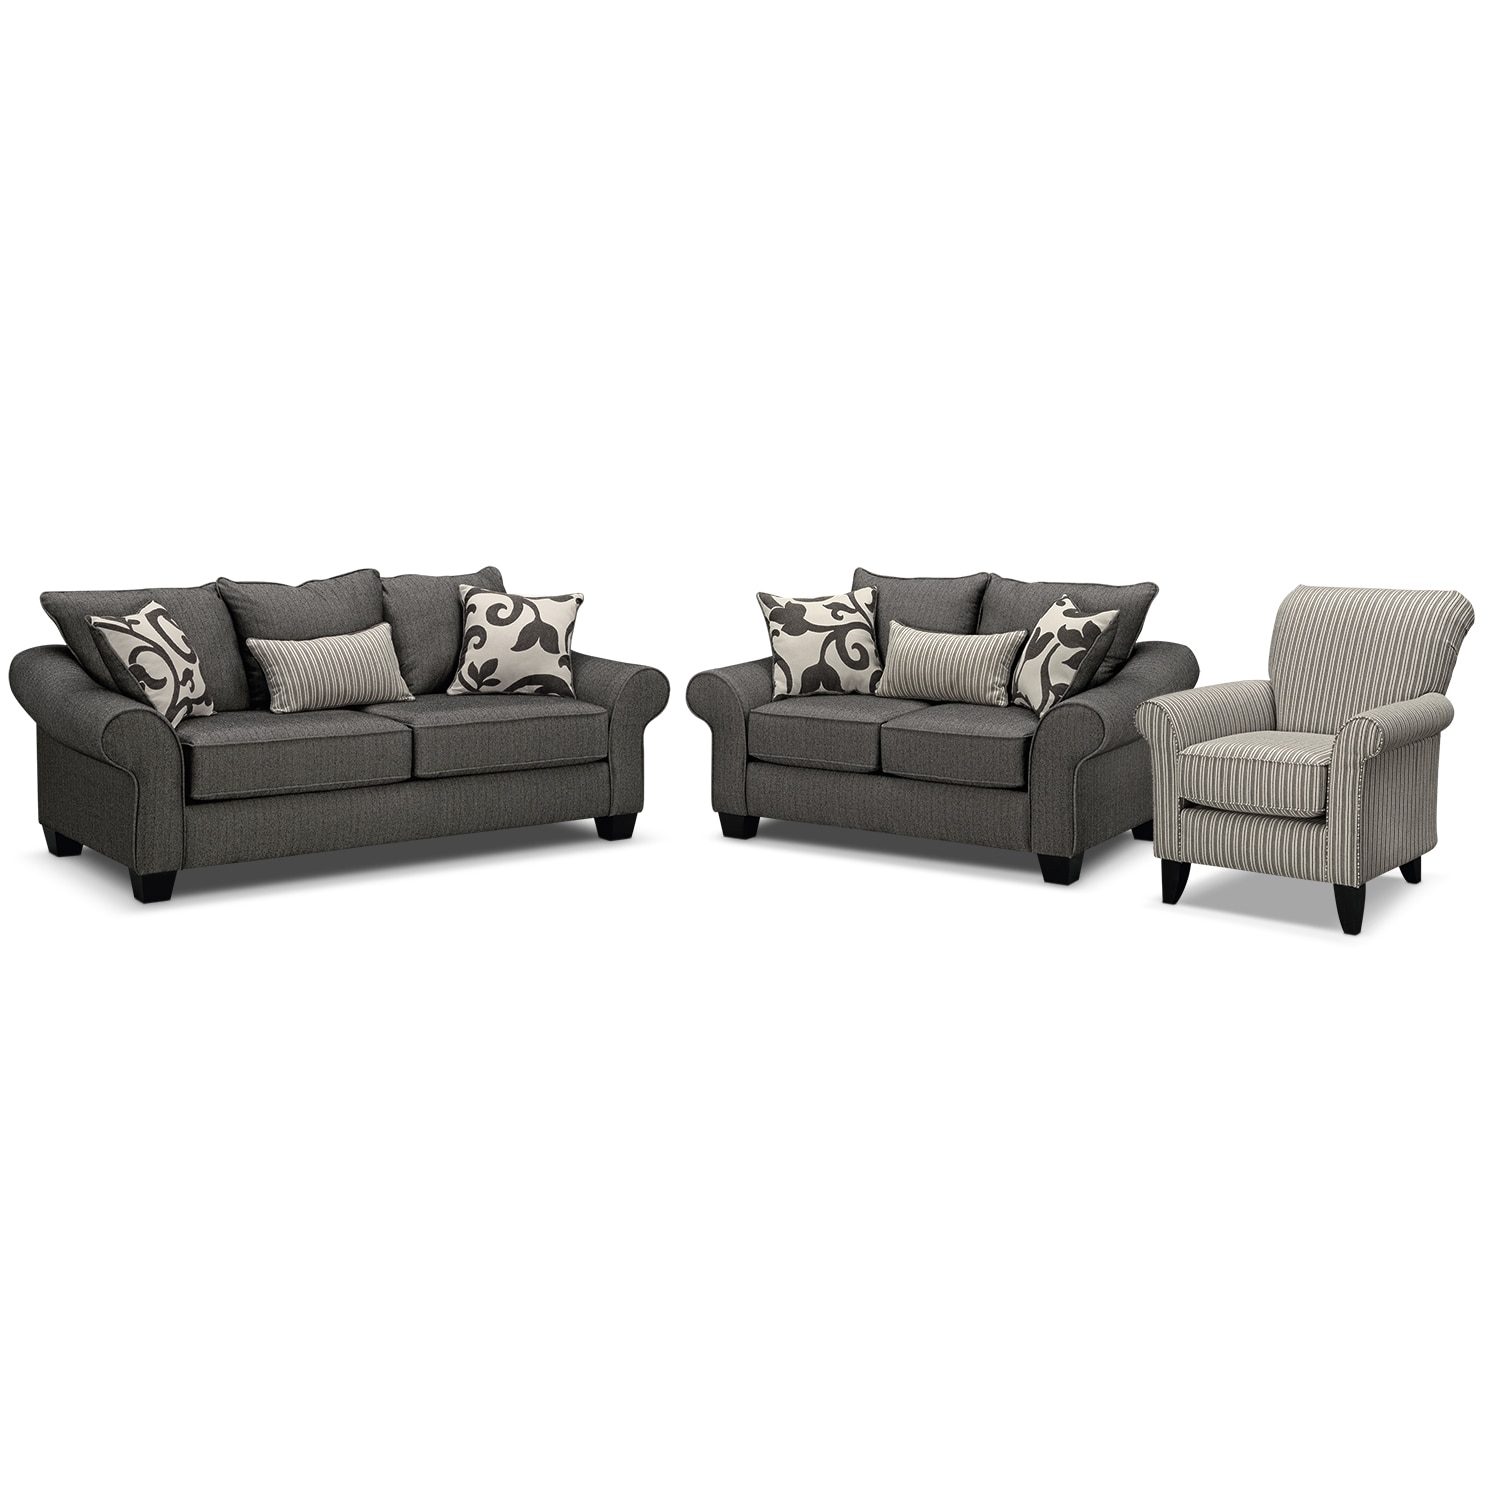 Colette Sofa Loveseat And Accent Chair Set Gray